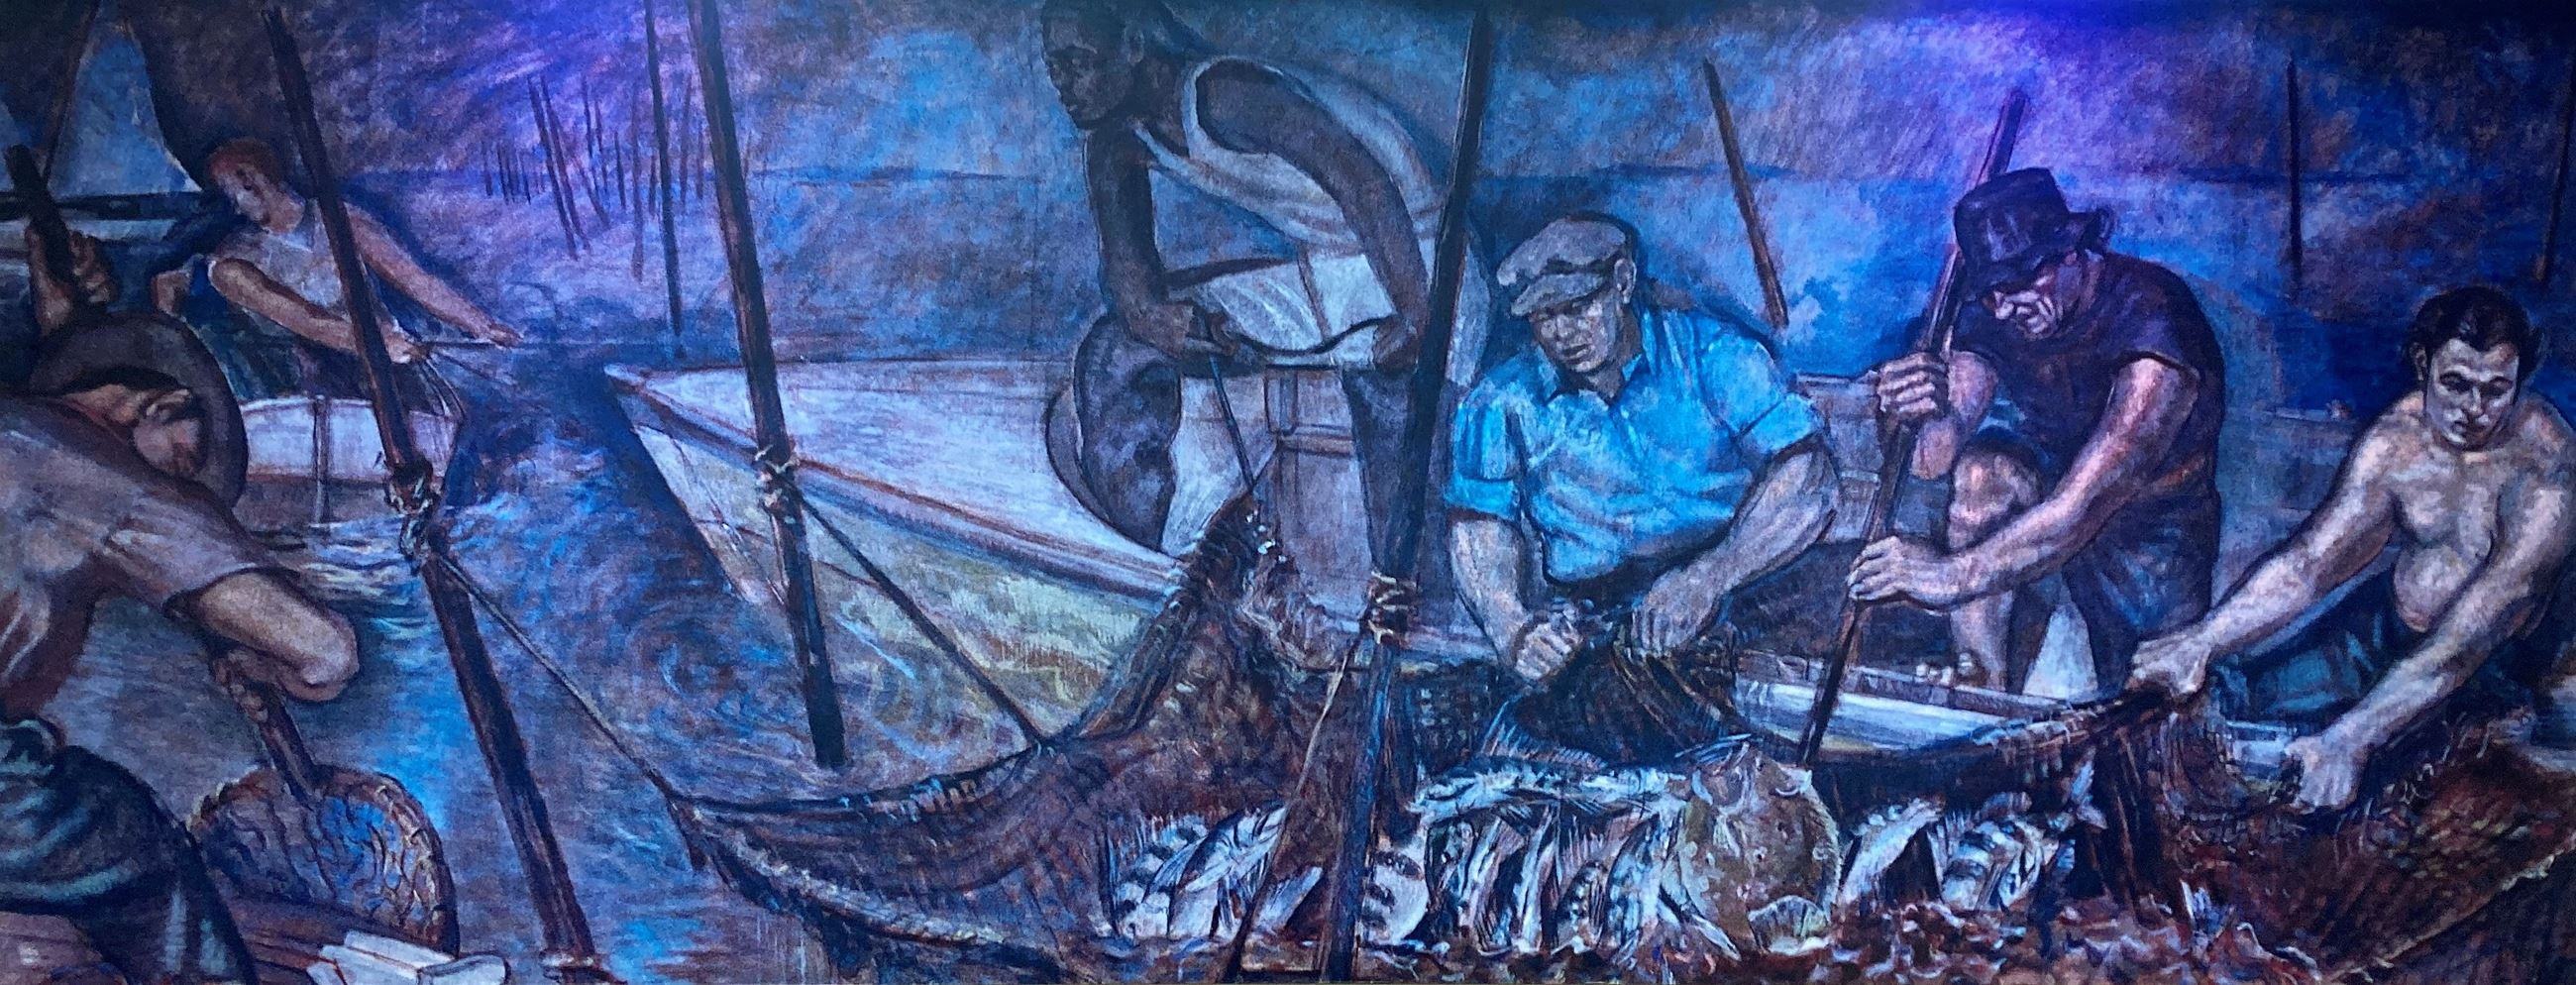 Chesapeake Fishermen adjusted